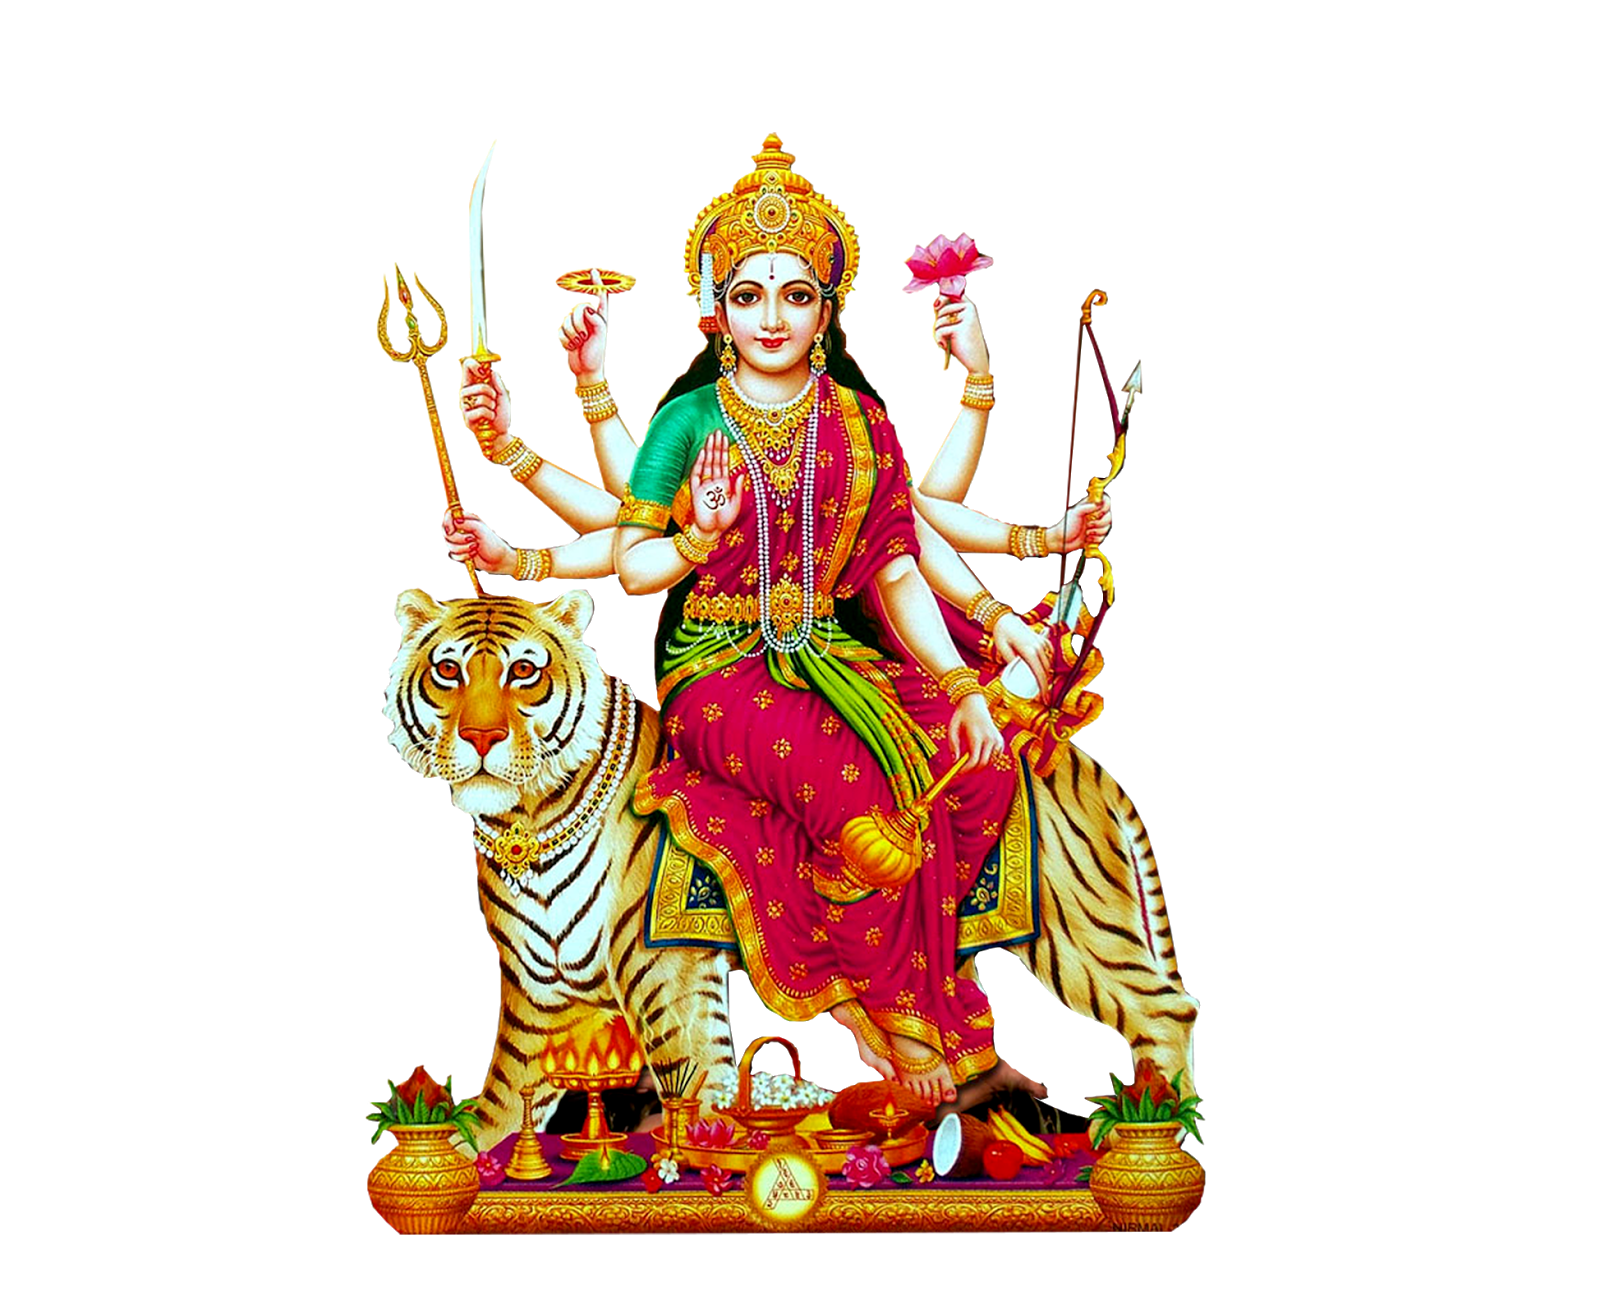 Indian God and Goddess Vector png wallpapes for free Goddess Durga matha  1080p images for free - Goddess HD PNG